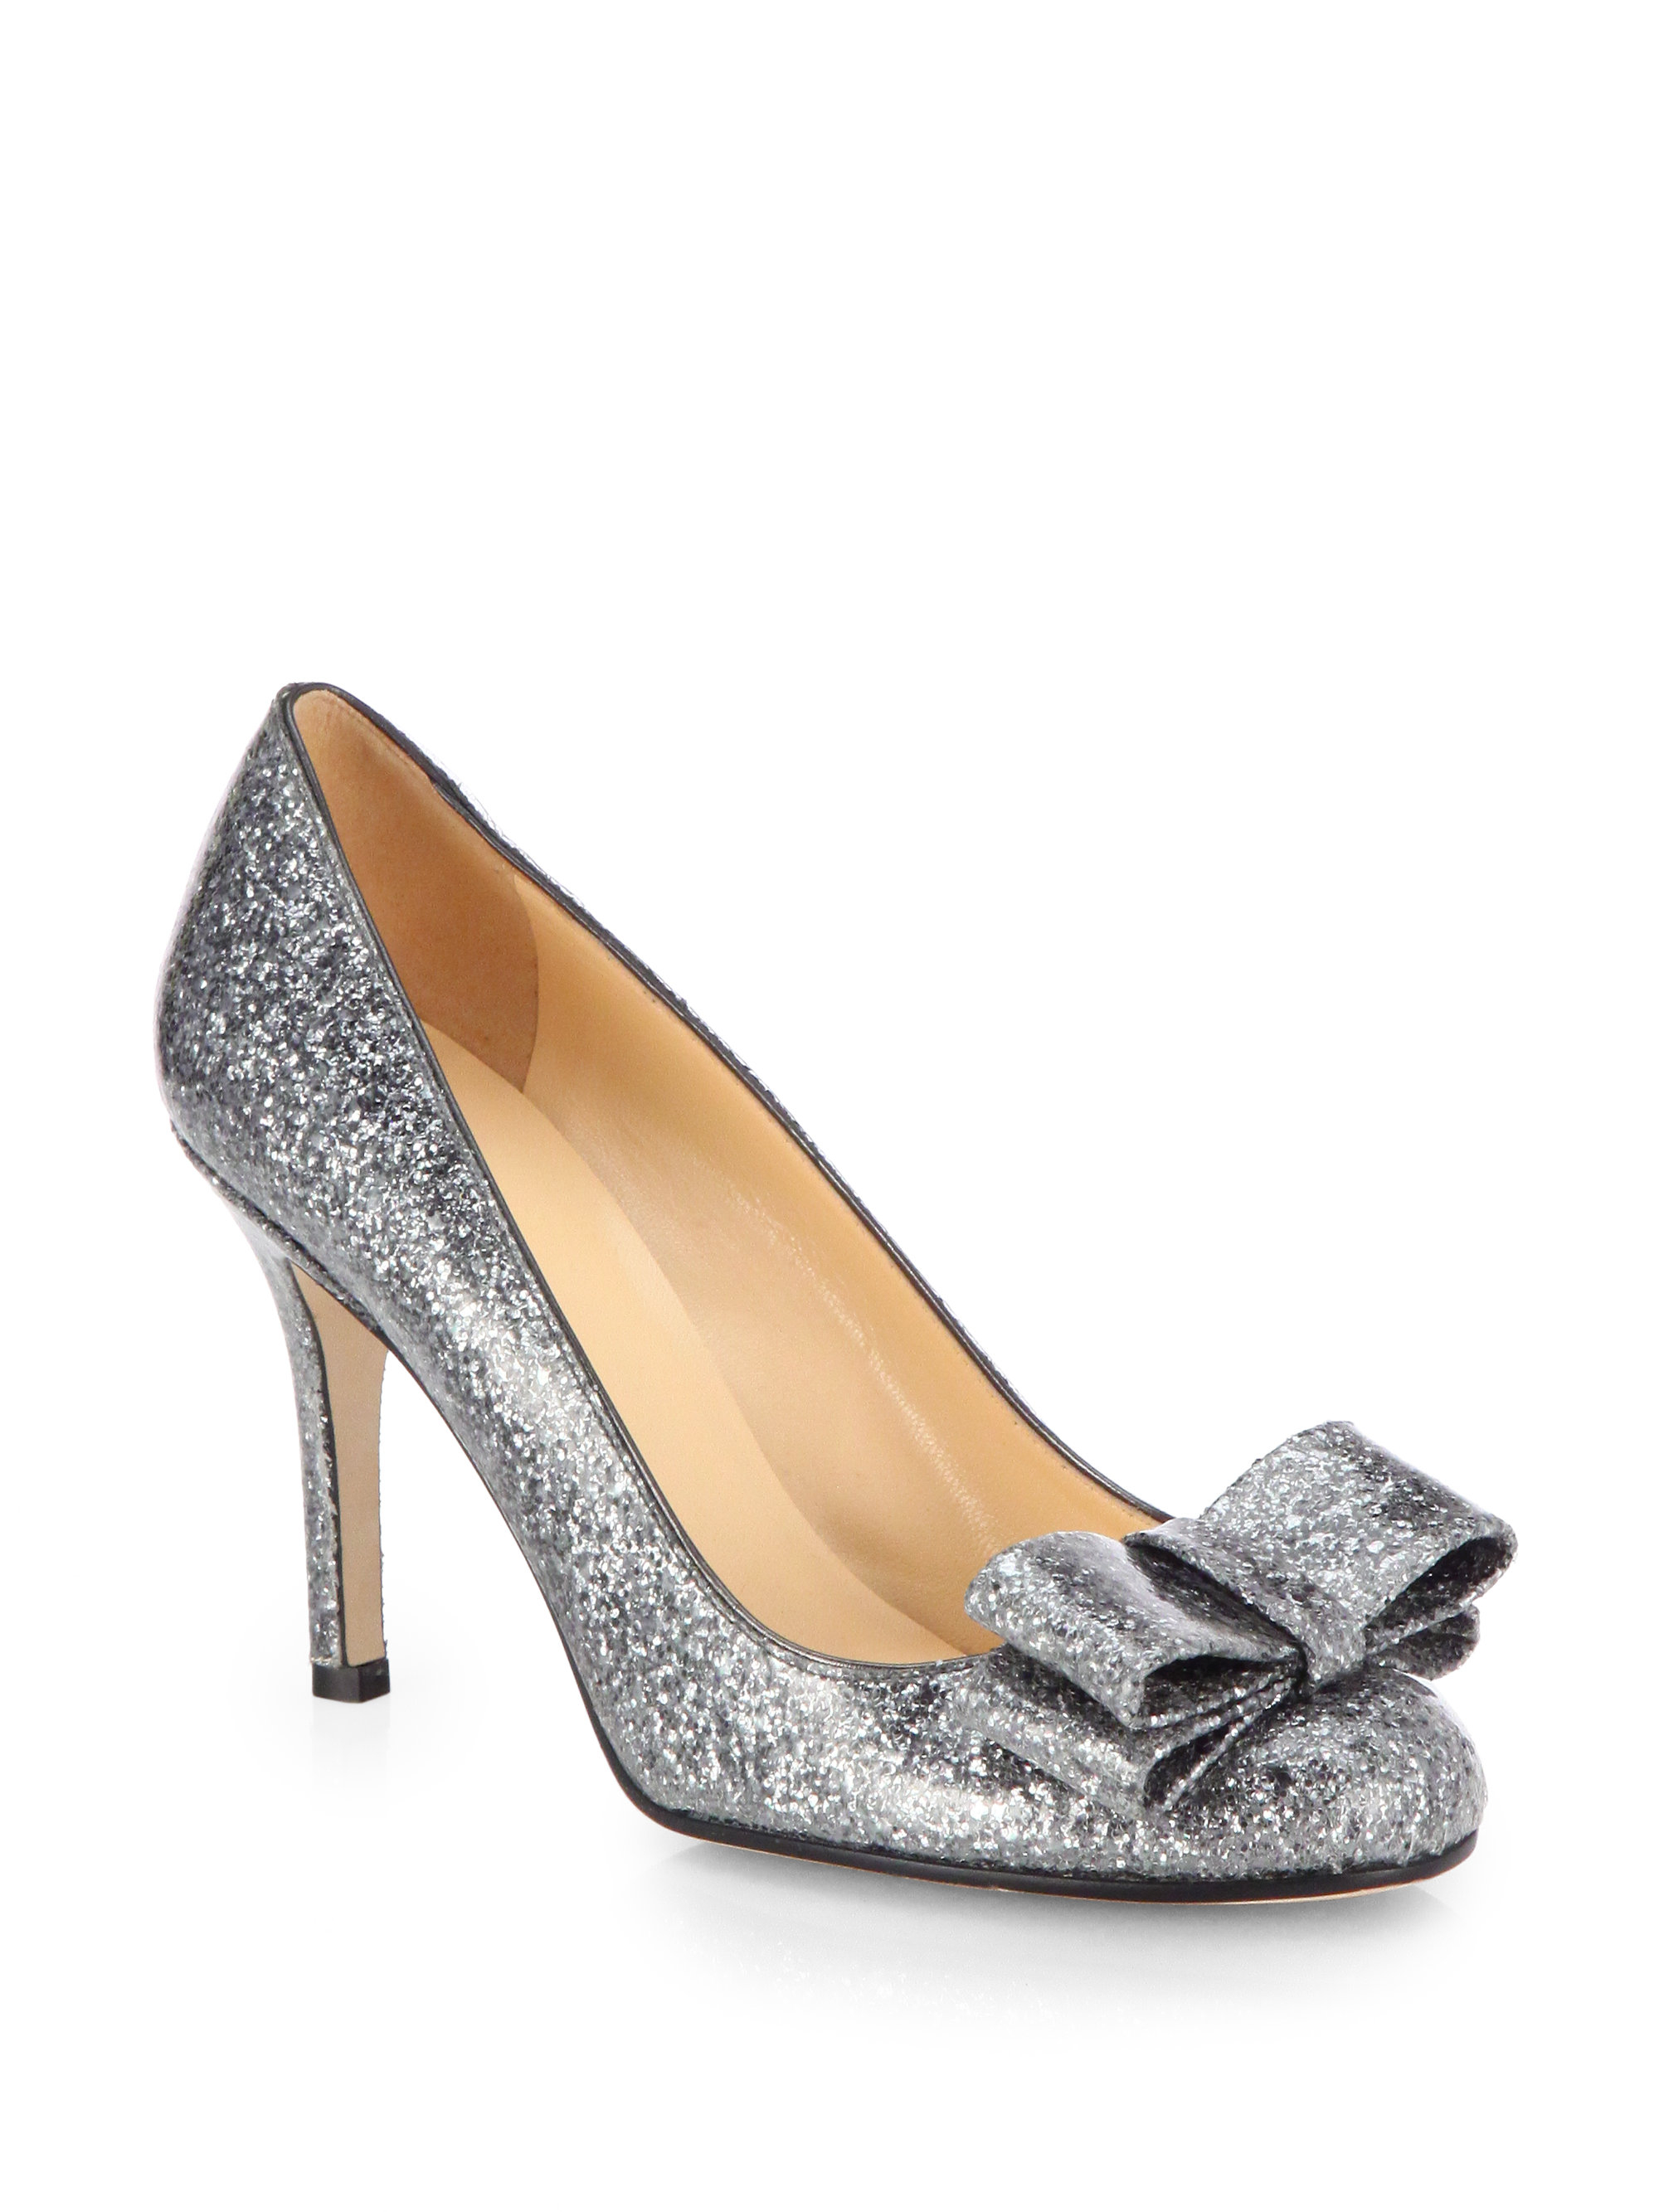 browse sale online Kate Spade New York Embellished Metallic Pumps top quality sale online cheap really cheap sale with paypal K8KKGgLN